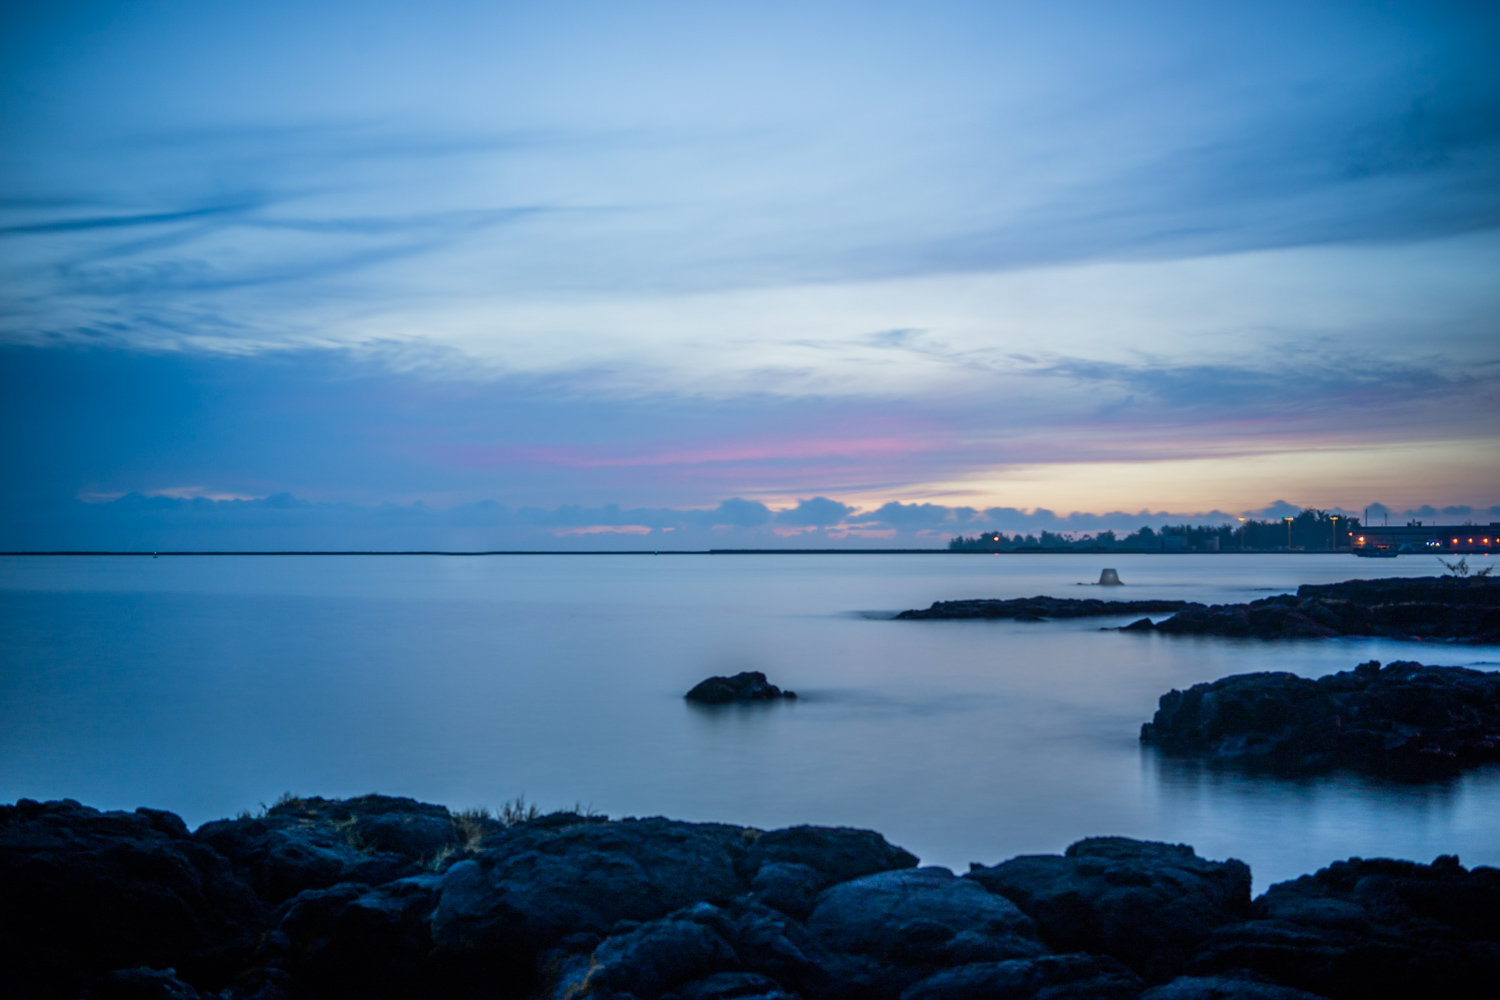 Sunrise in Hilo from Grand Naniloa Hotel by Double tree offers a beautiful view.